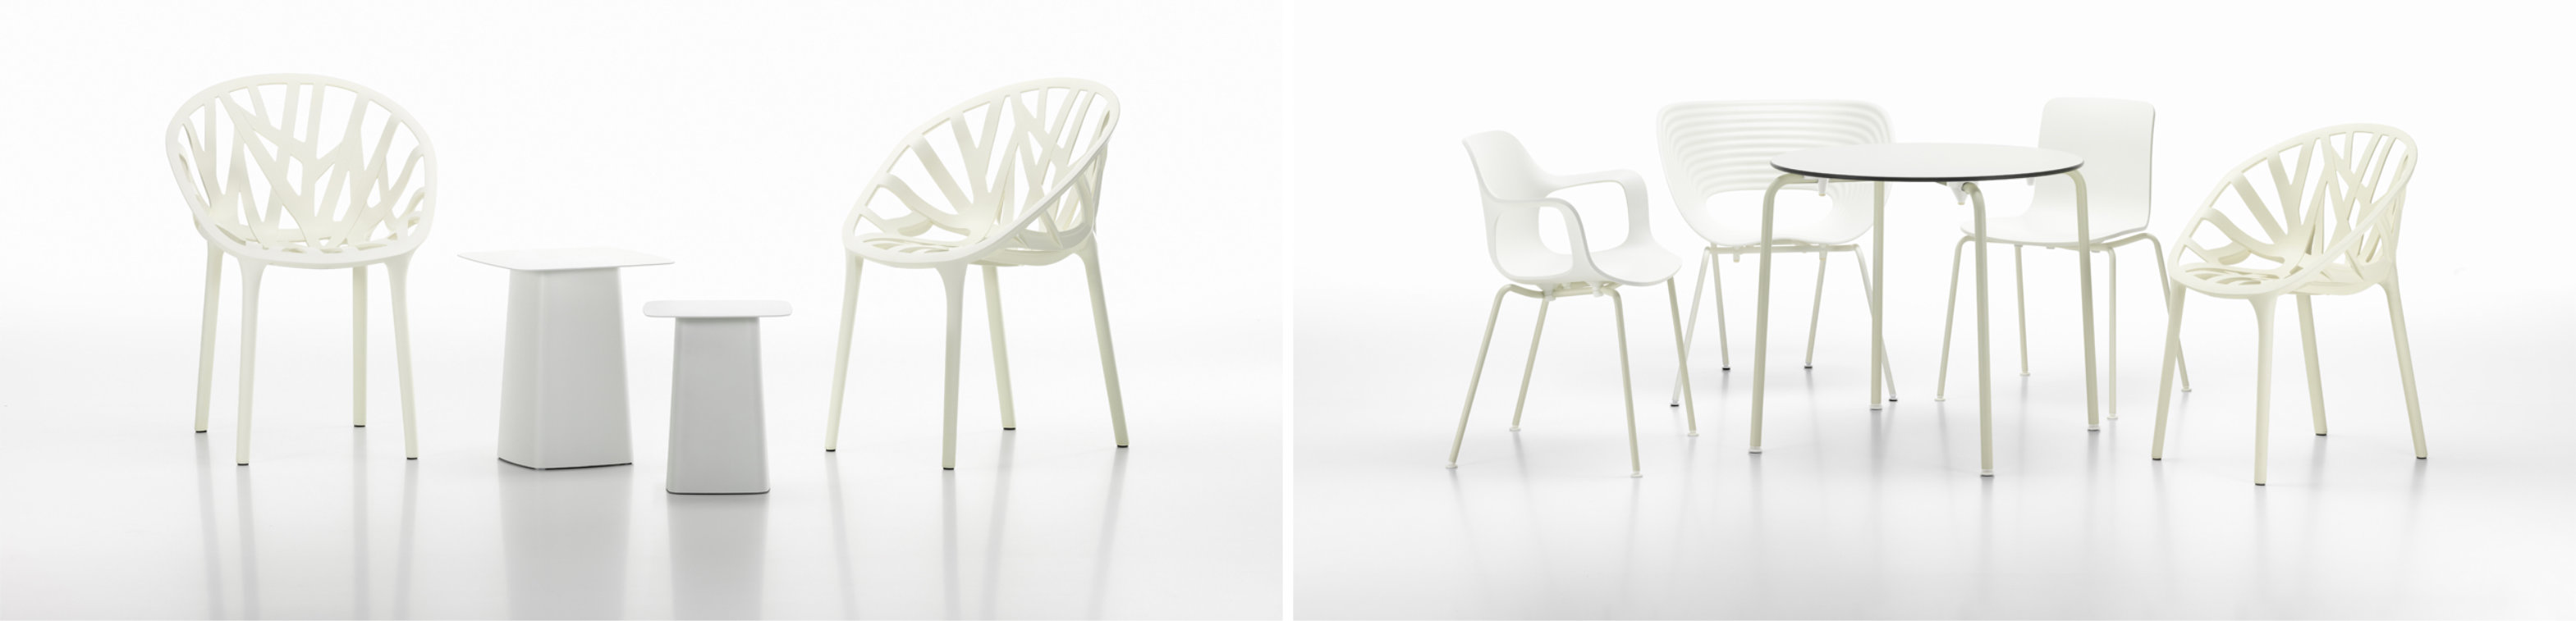 interiorlines_vitra_white_collection1.jpg